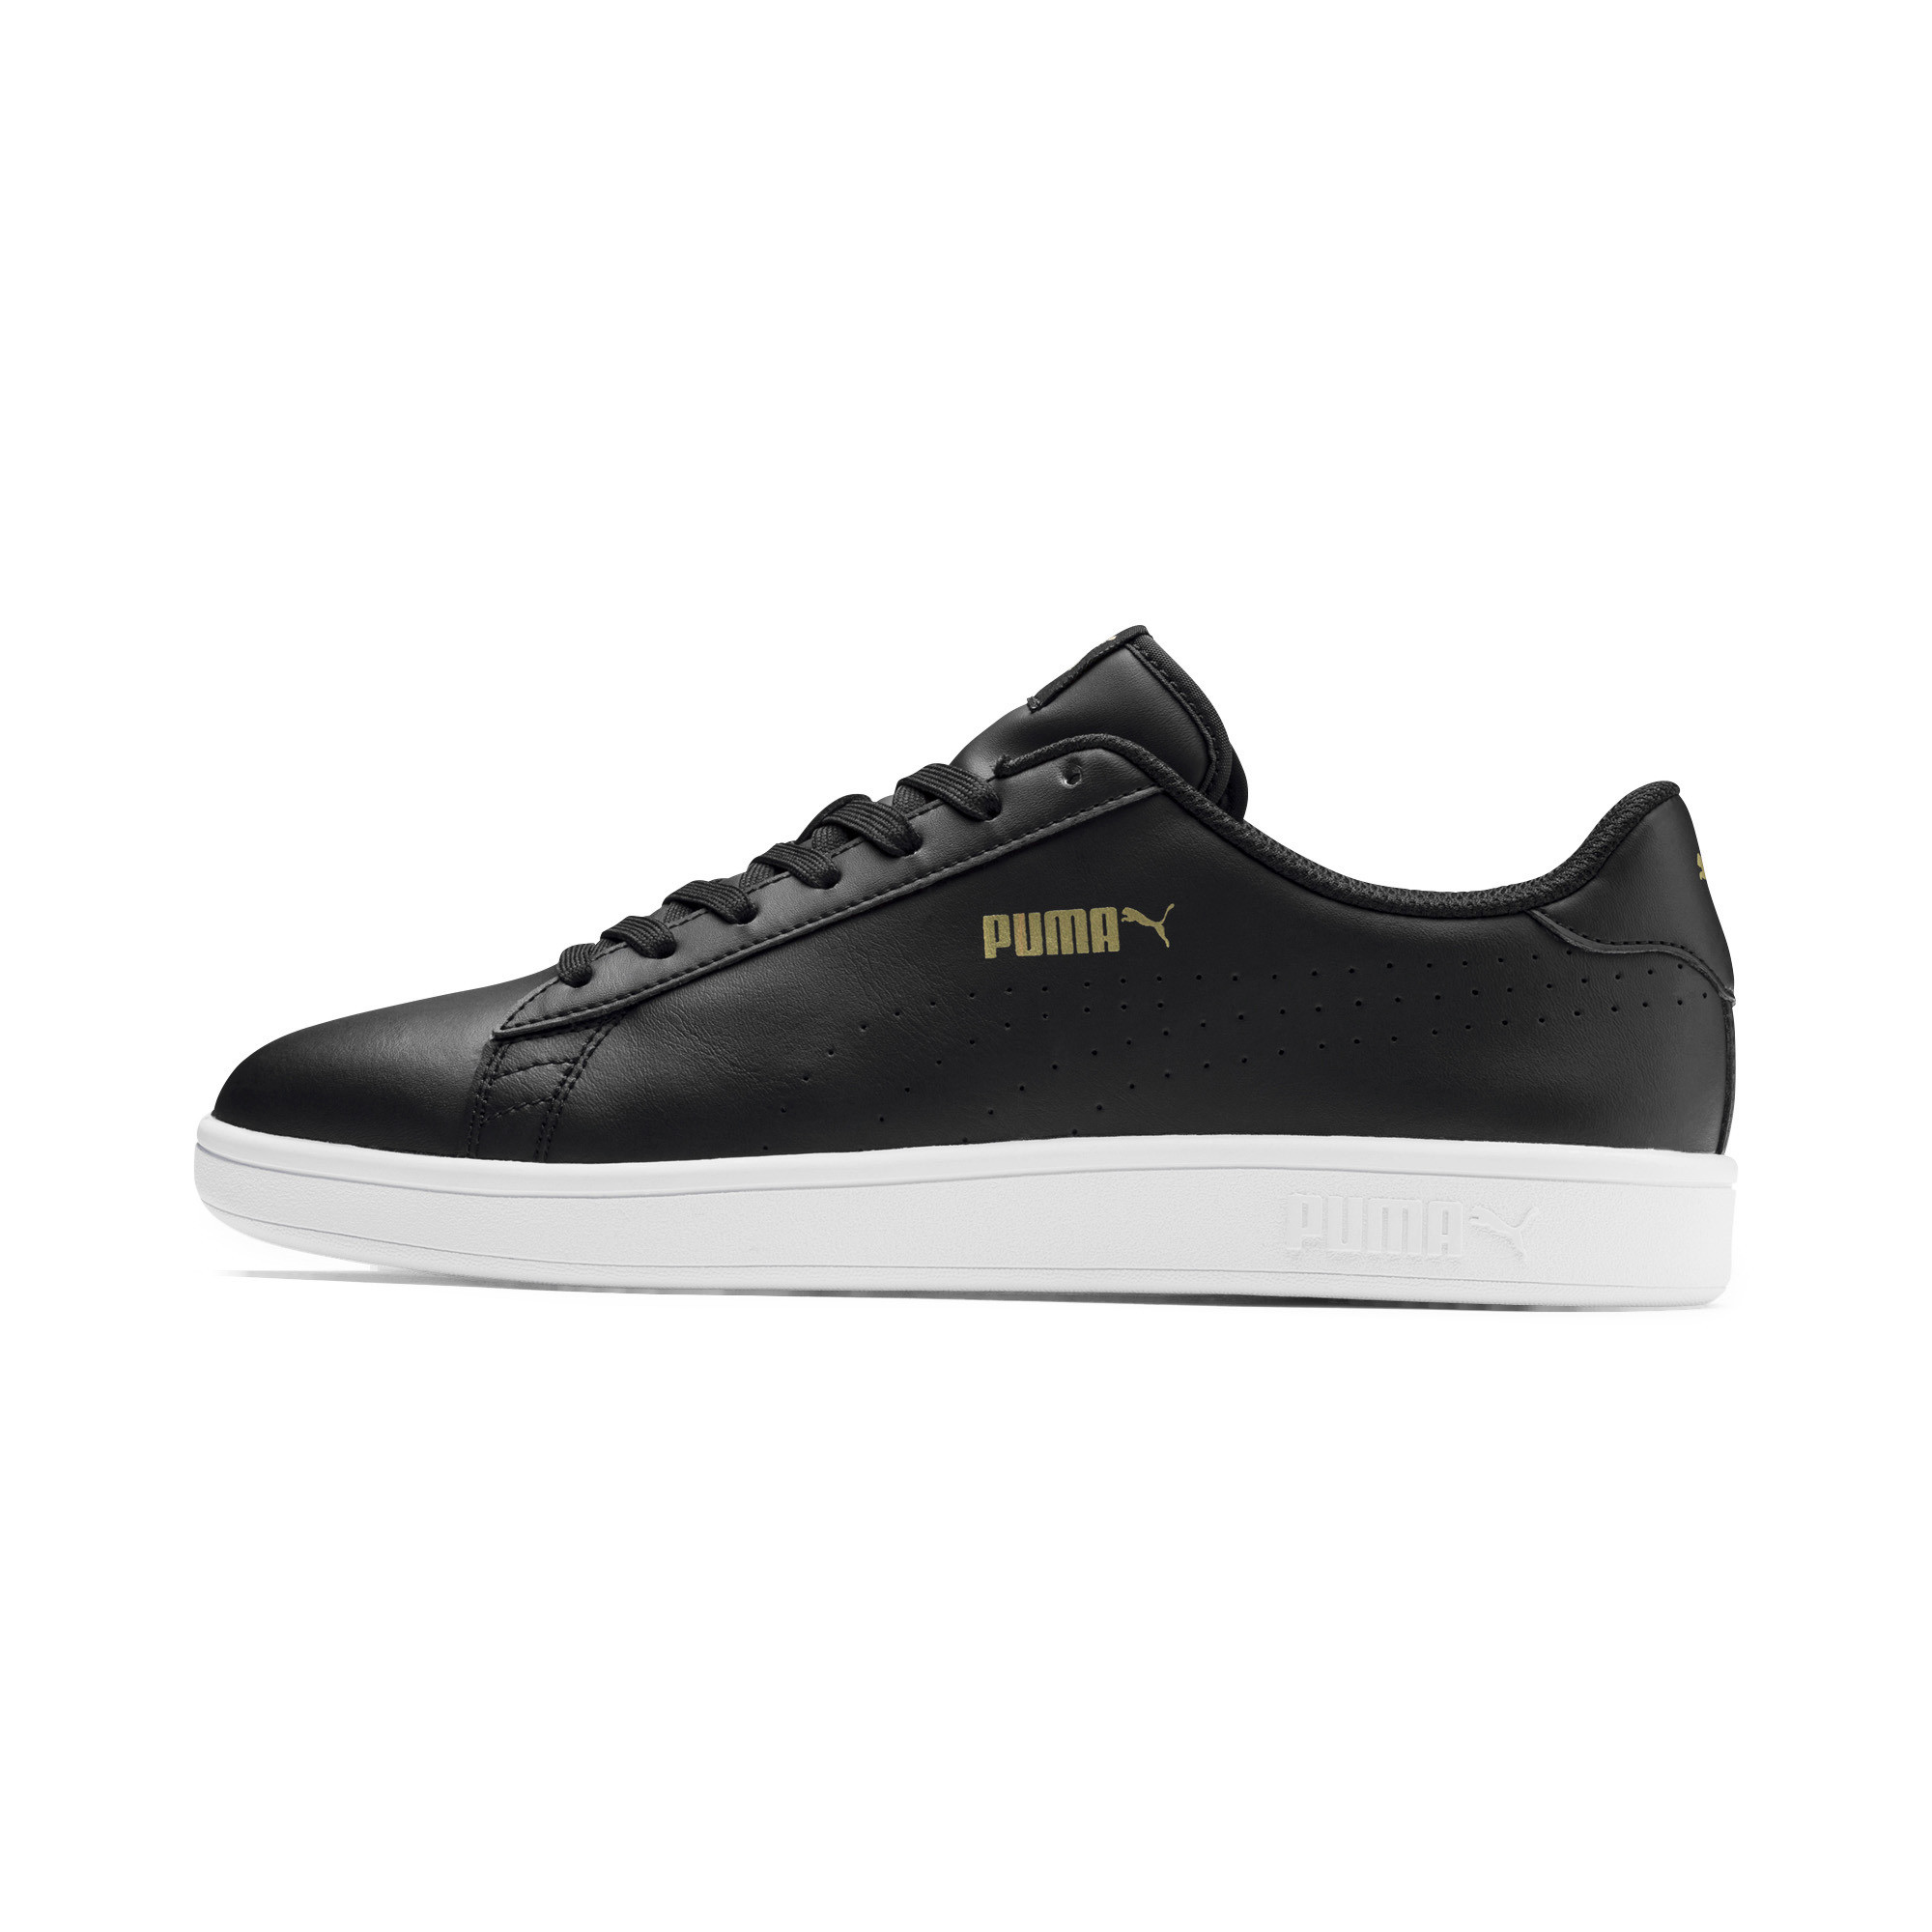 PUMA-PUMA-Smash-v2-Leather-Perf-Sneakers-Men-Shoe-Basics miniatura 16